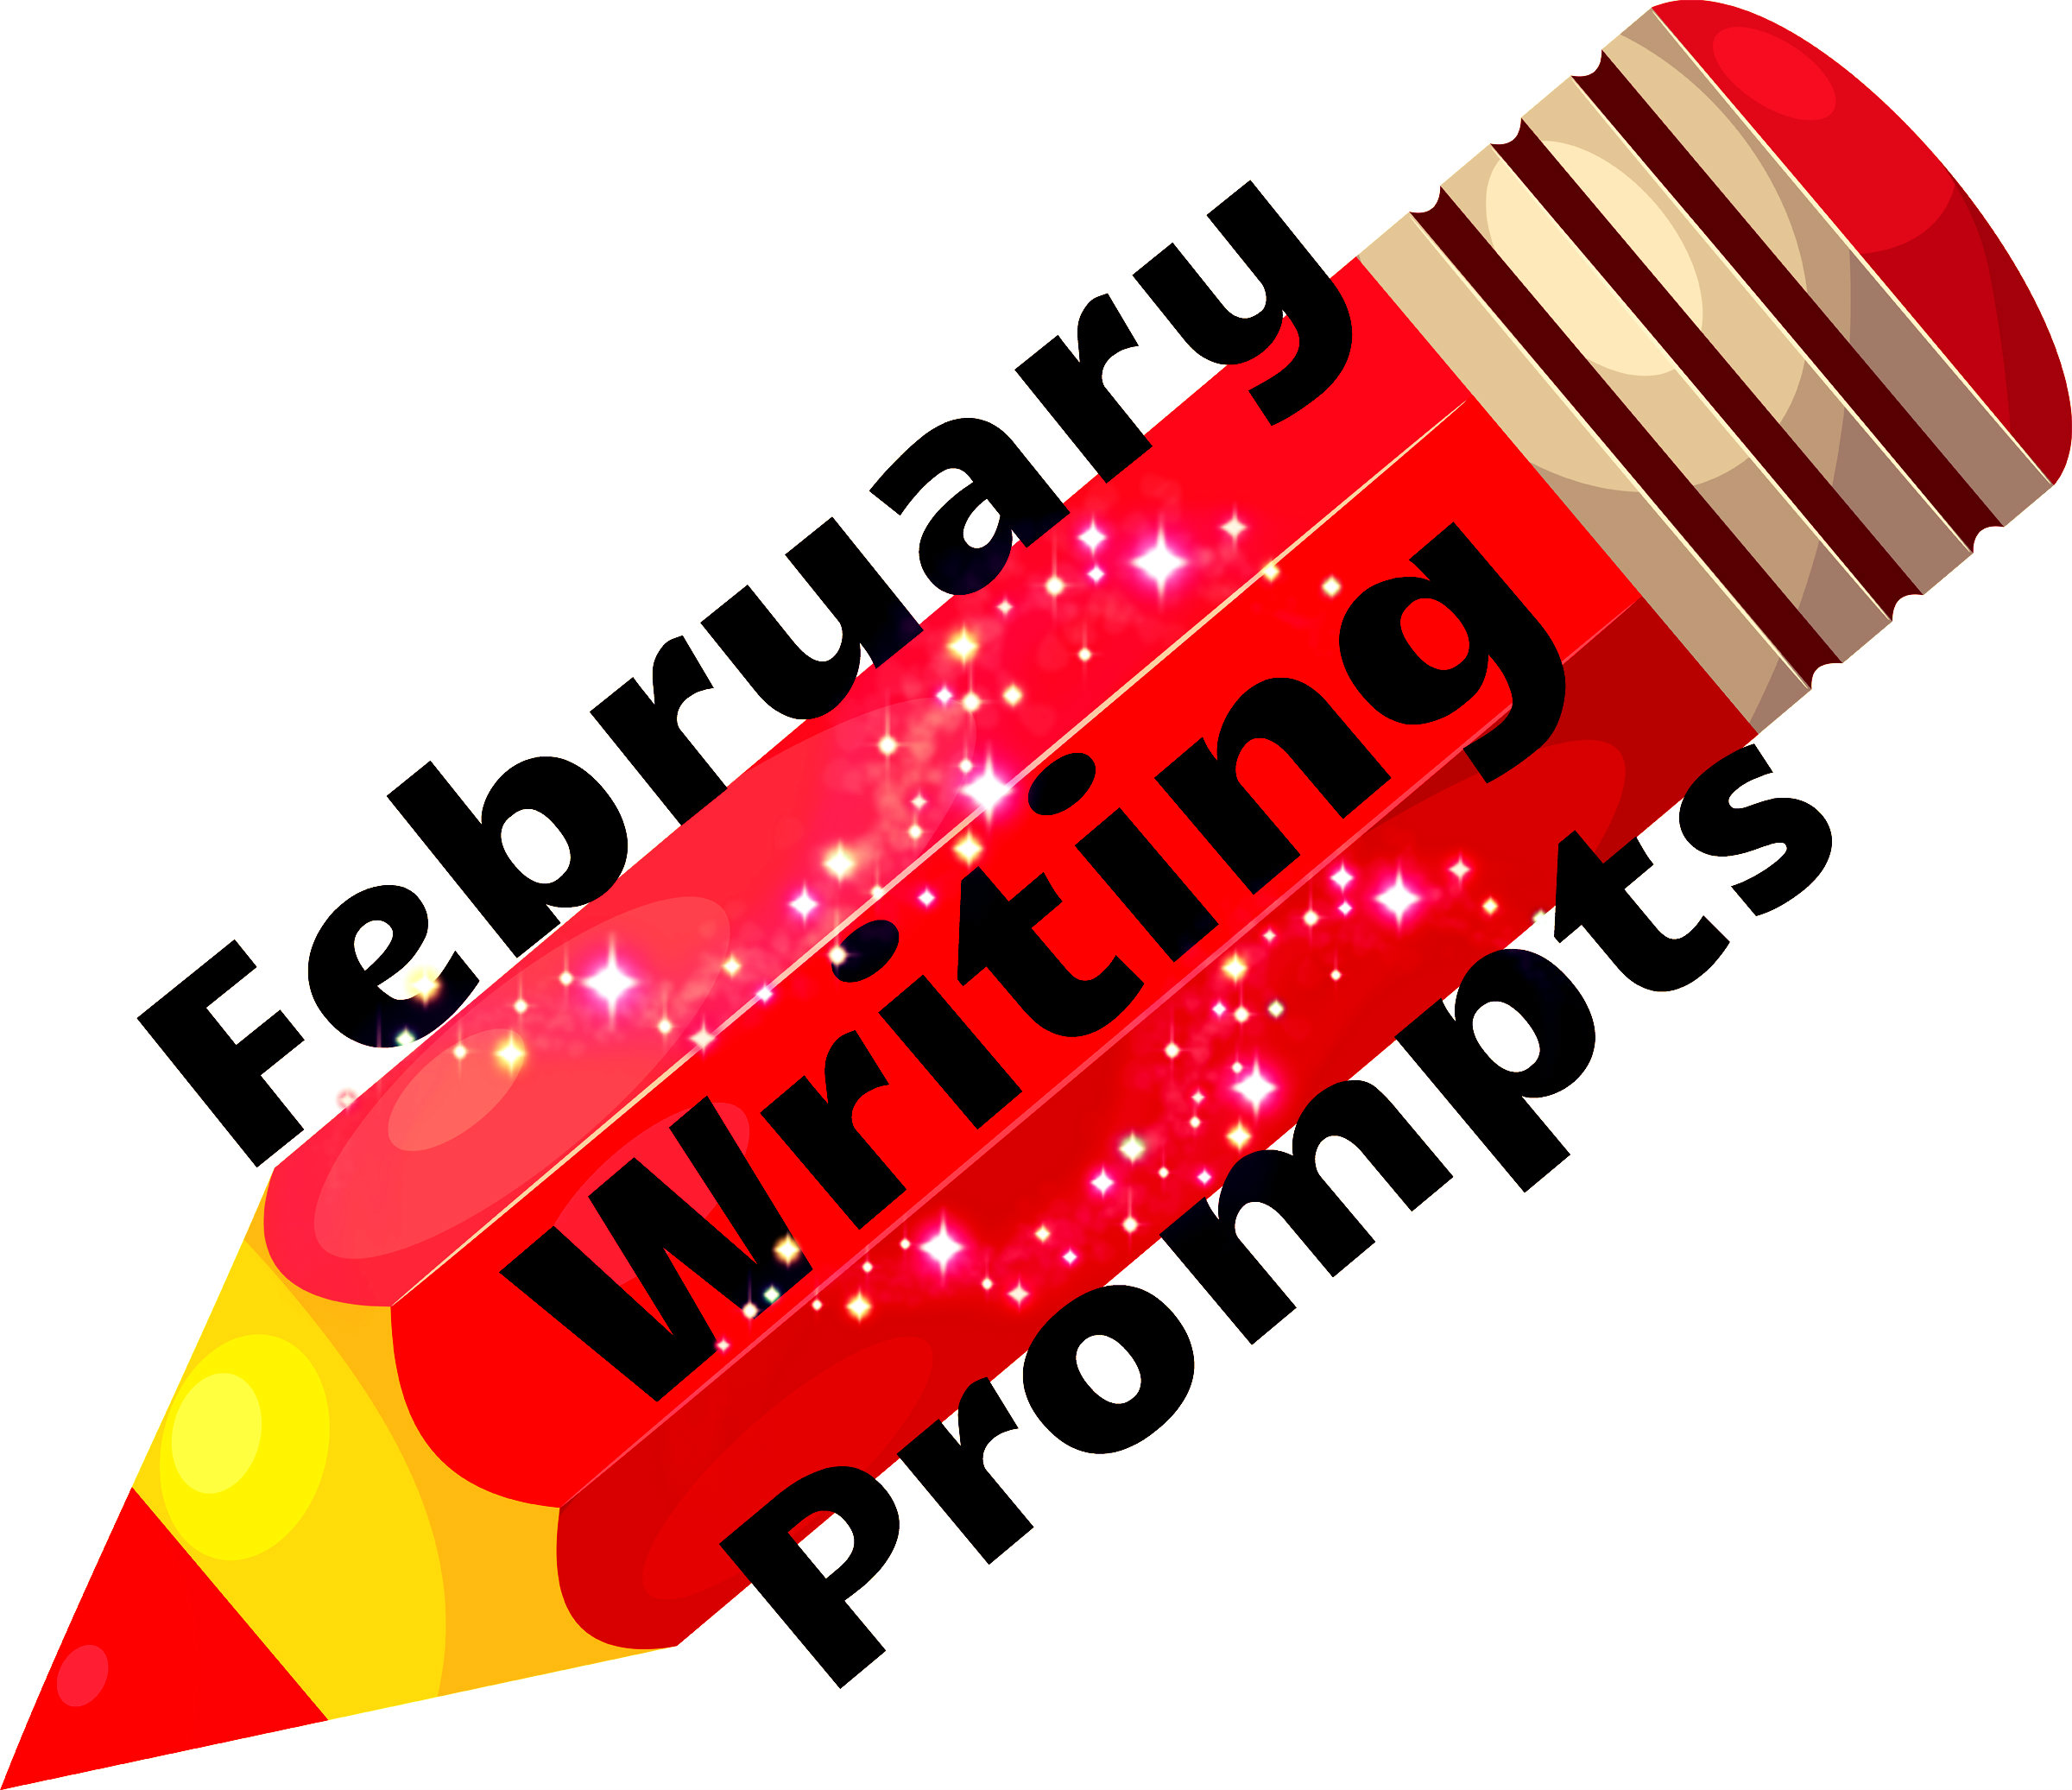 free writing prompts The online writing group, writing workshop, and writing community where writers  get quality  writers of all skill levels join to improve each other's work with  thoughtful critiques and by  learn from a vast collection of free writing resources.